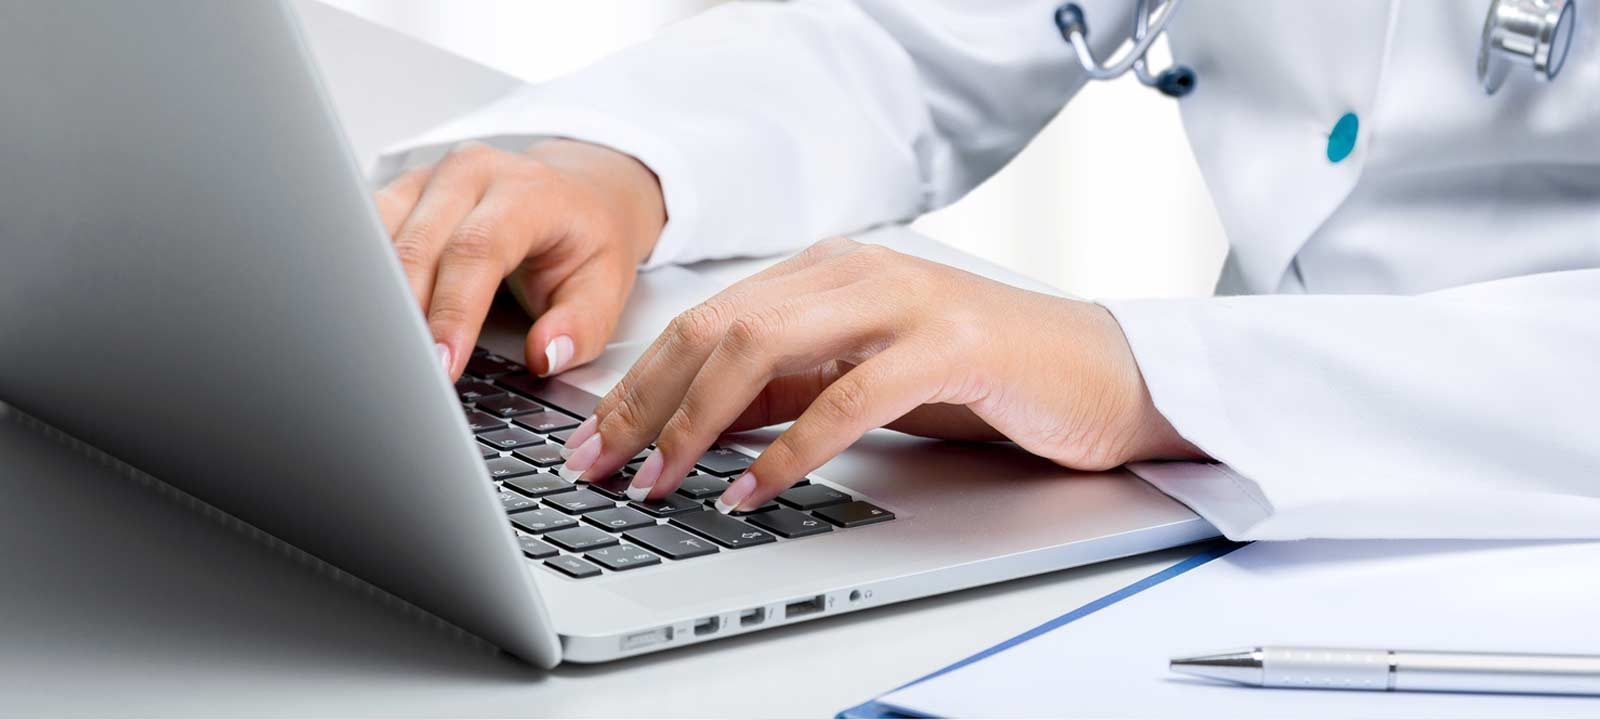 medical professional uses a computer